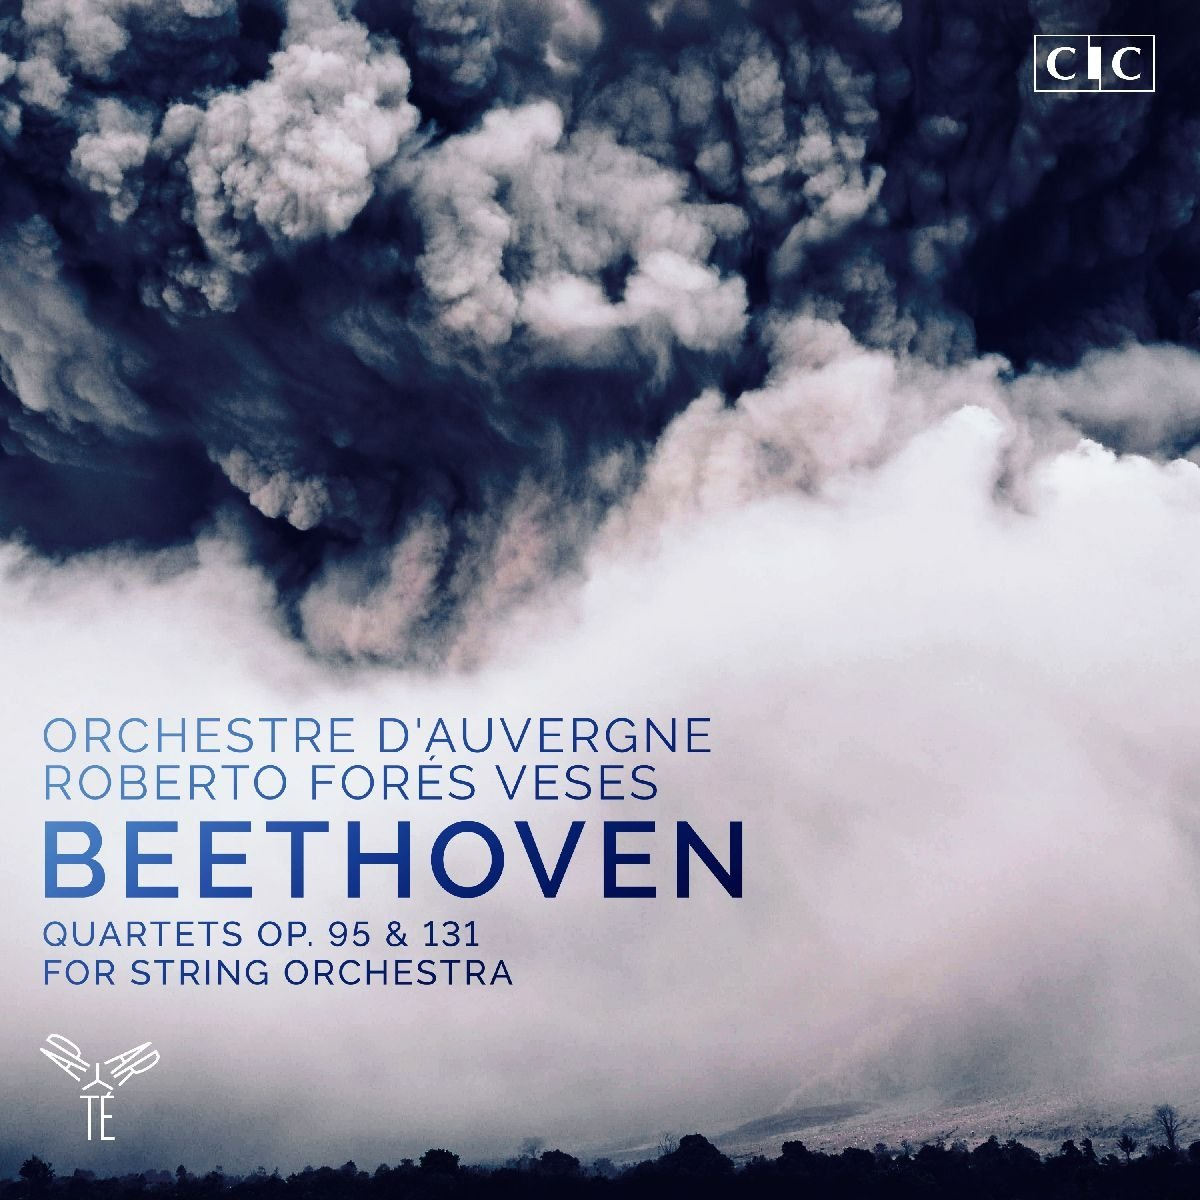 Ludwig van Beethoven (1770-1827) - Page 13 71A6a2ZONkL._SL1200_